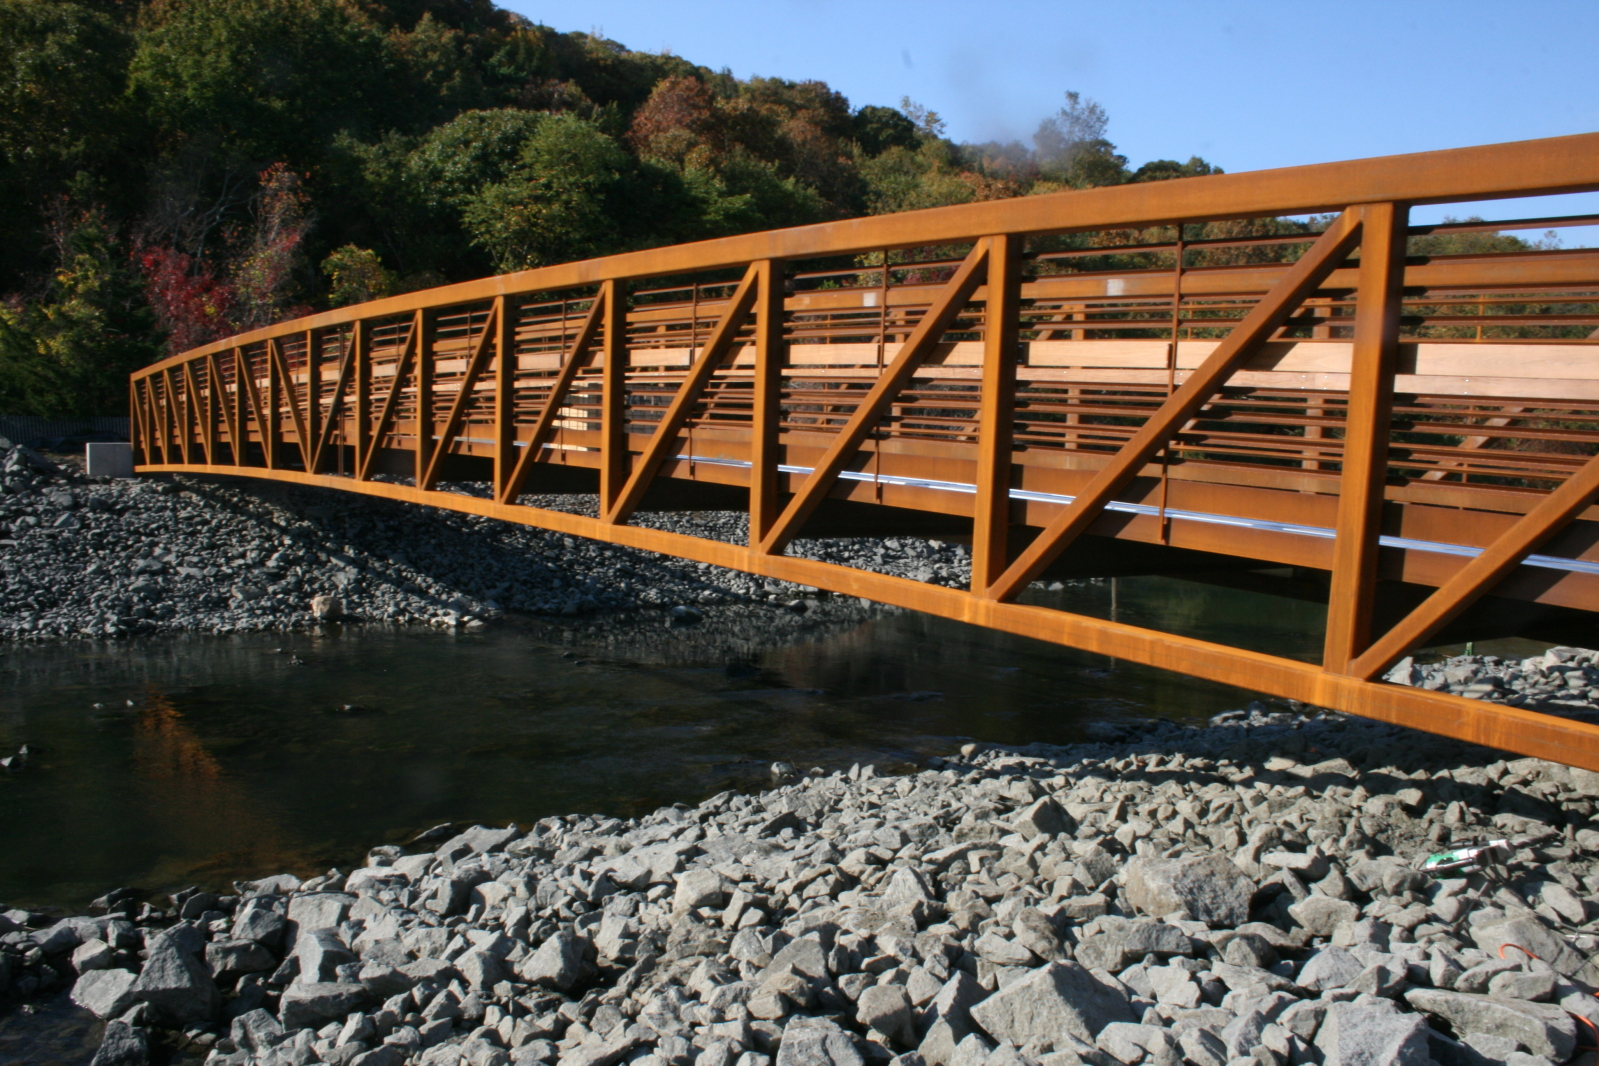 New walking bridge at Sunken Meadow